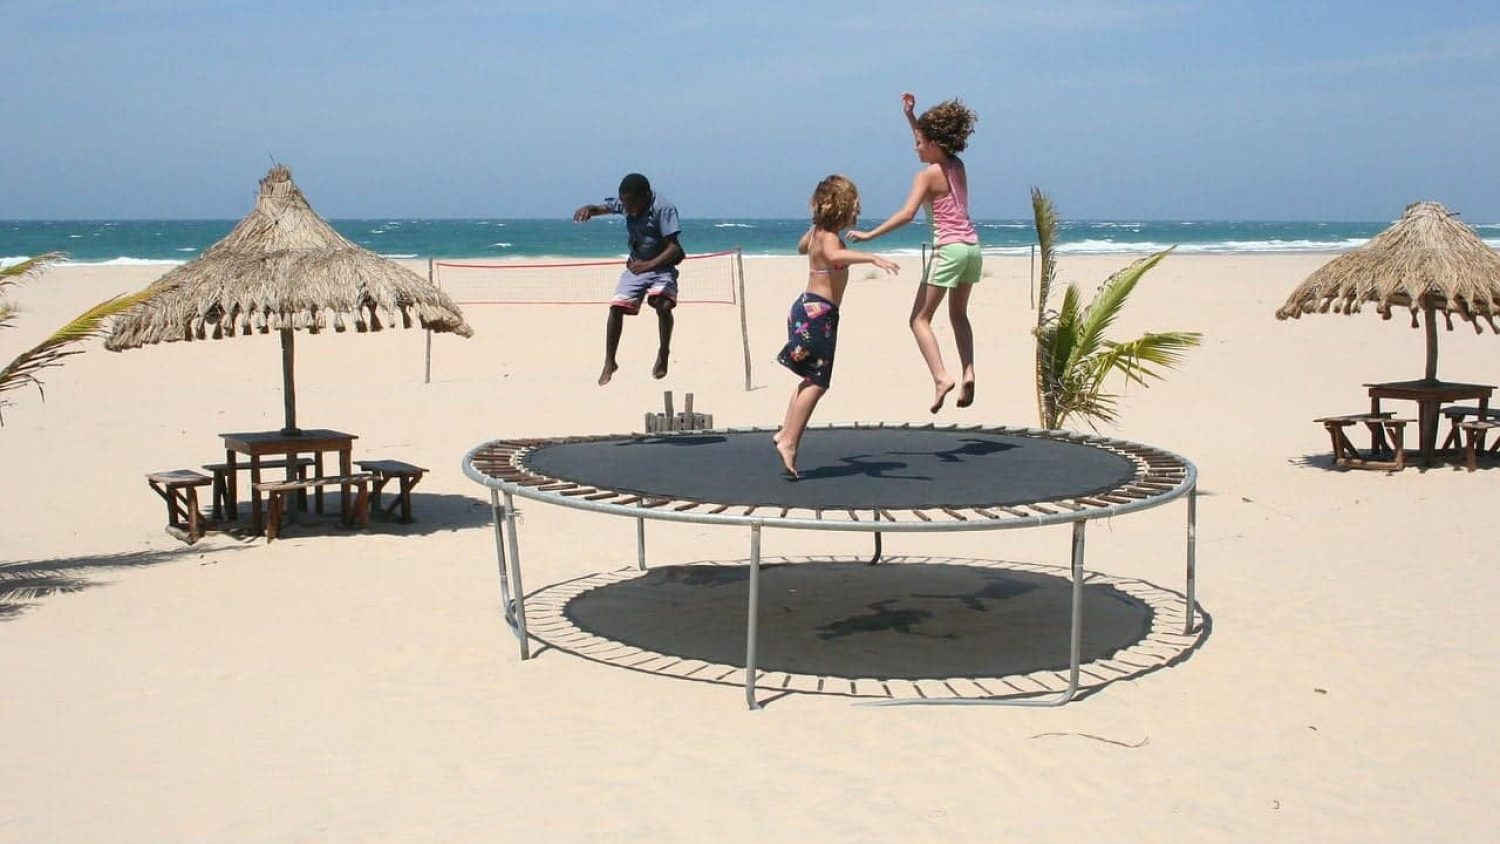 8ft Trampoline vs 10ft Trampoline – Which One Should You Buy?